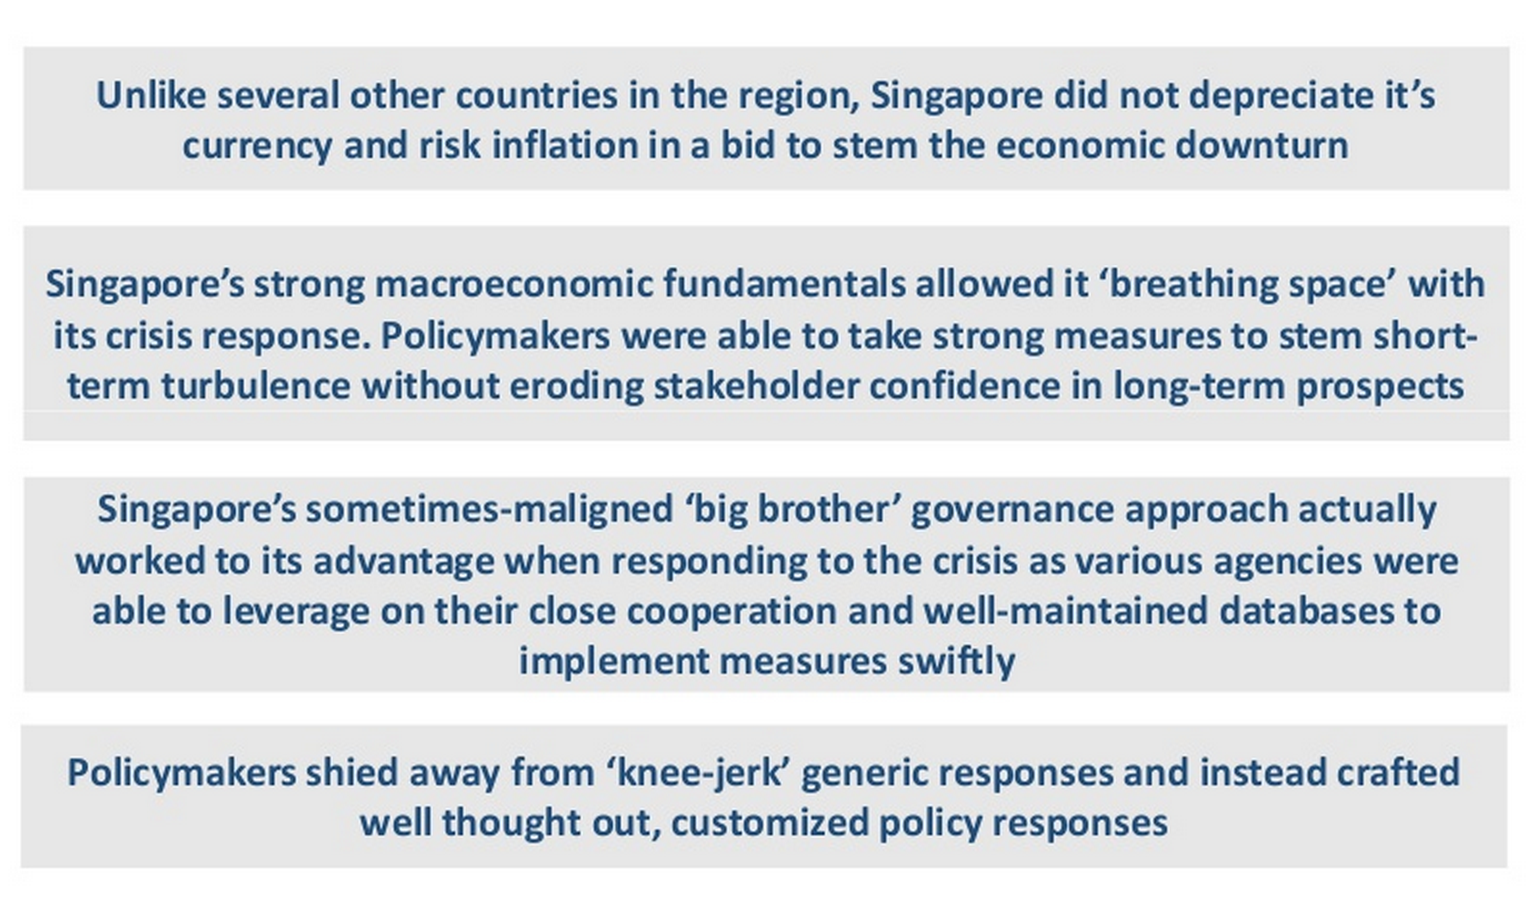 global financial crisis and beyond economics tuition singapore screen shot 2014 09 09 at 1 12 45 am